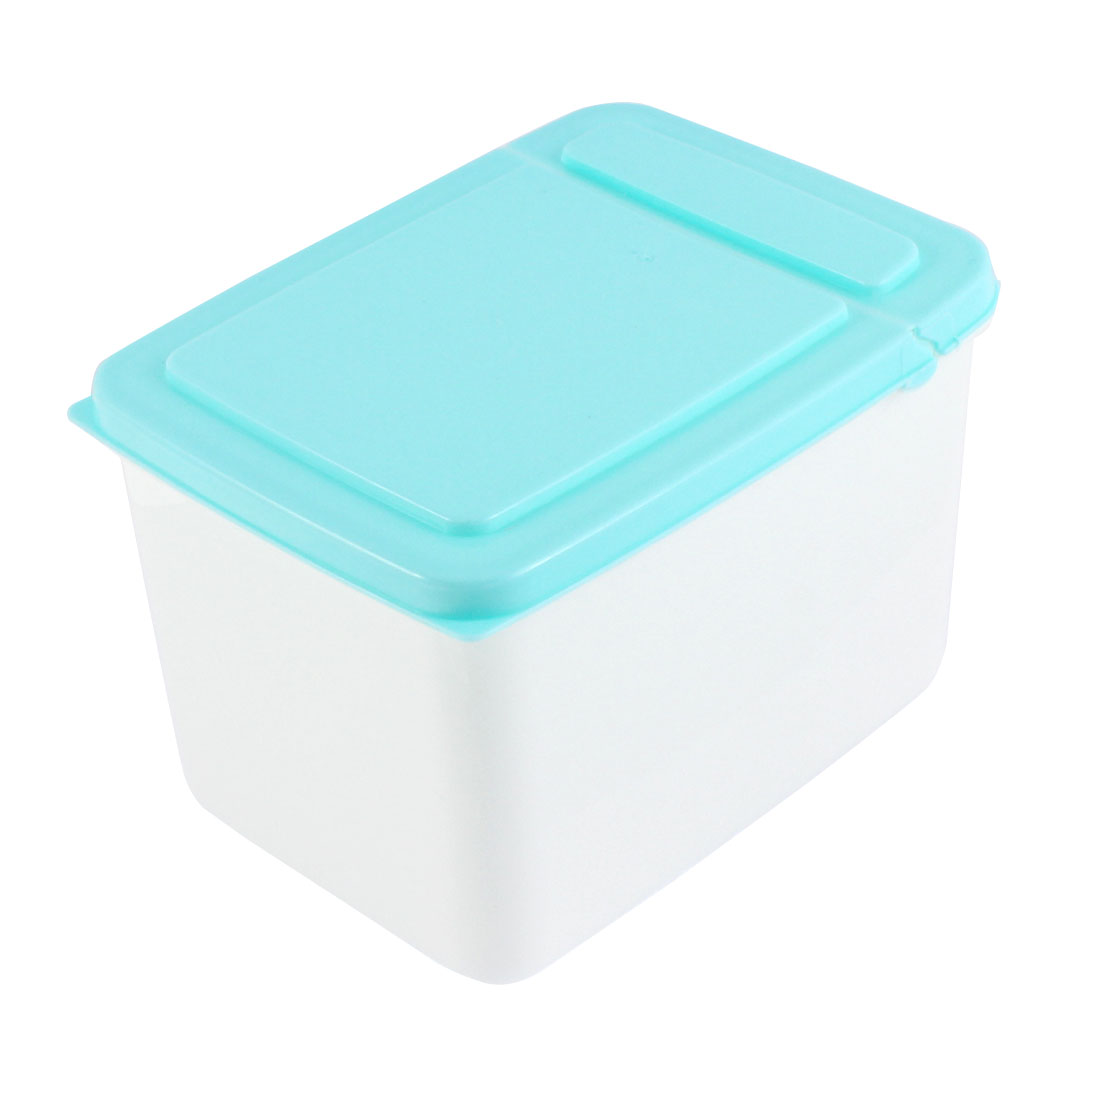 Office Plastic Food Storage Box Container 15cm x 11cm x 10cm 1.3L Blue